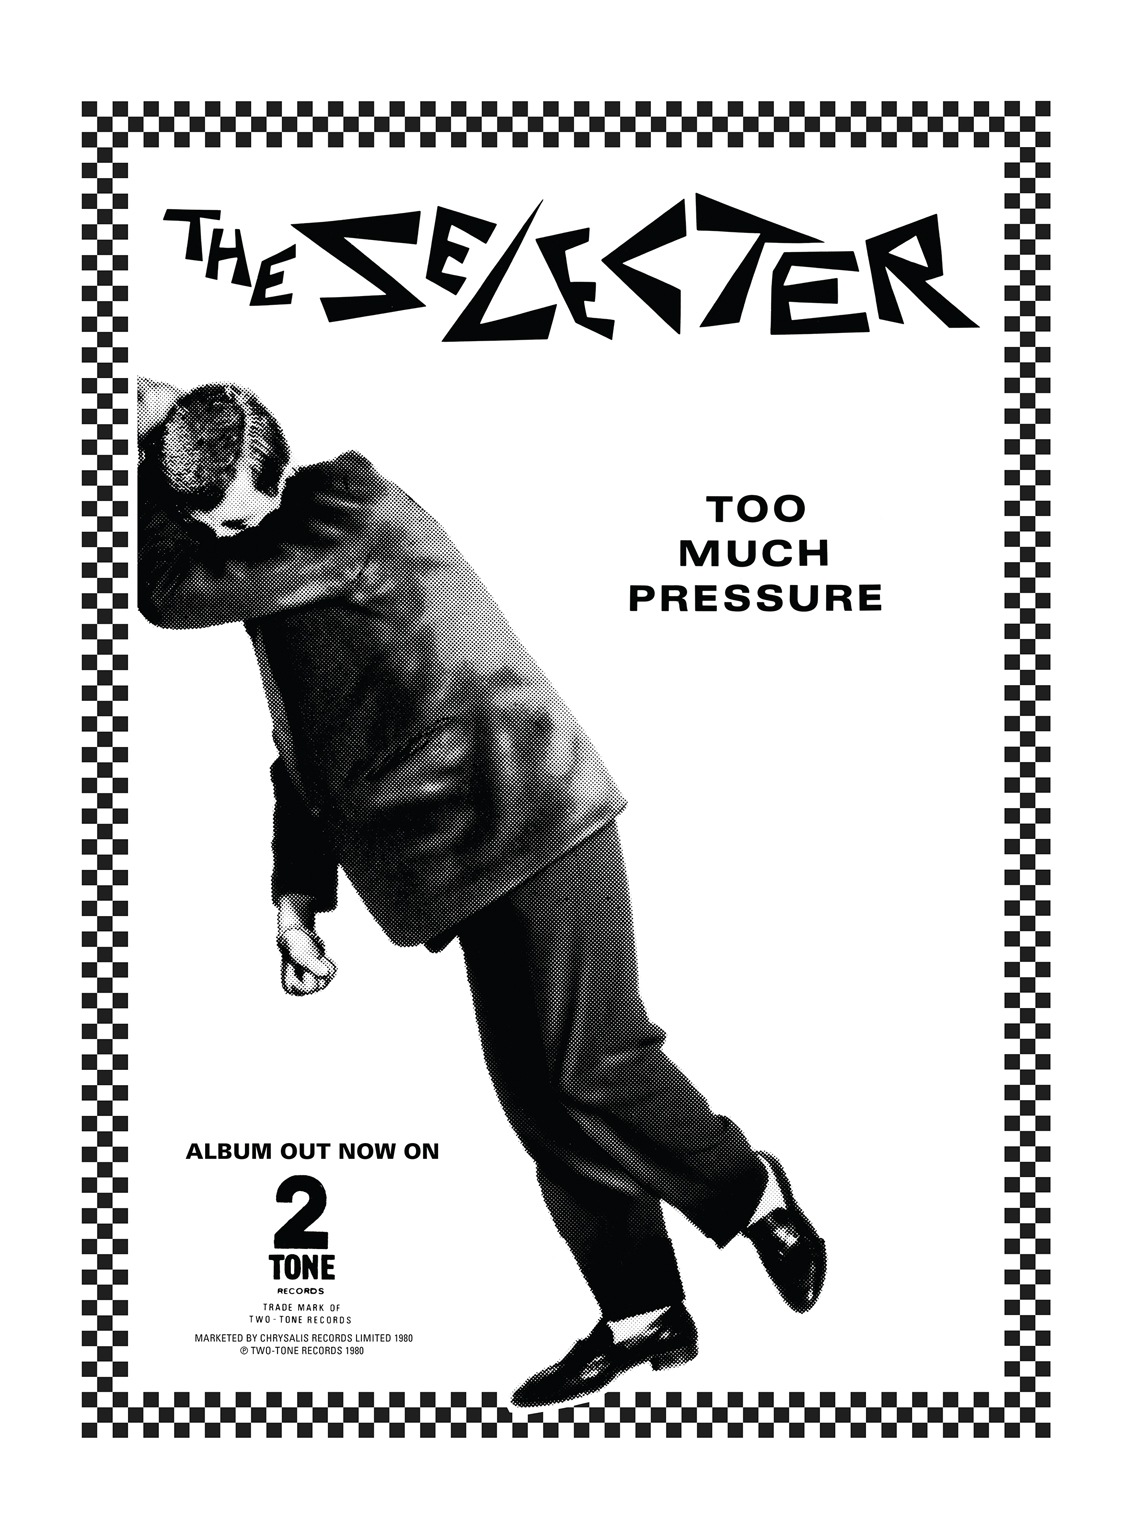 Poster designed by David Storey for The Selecter's debut, Too Much Pressure